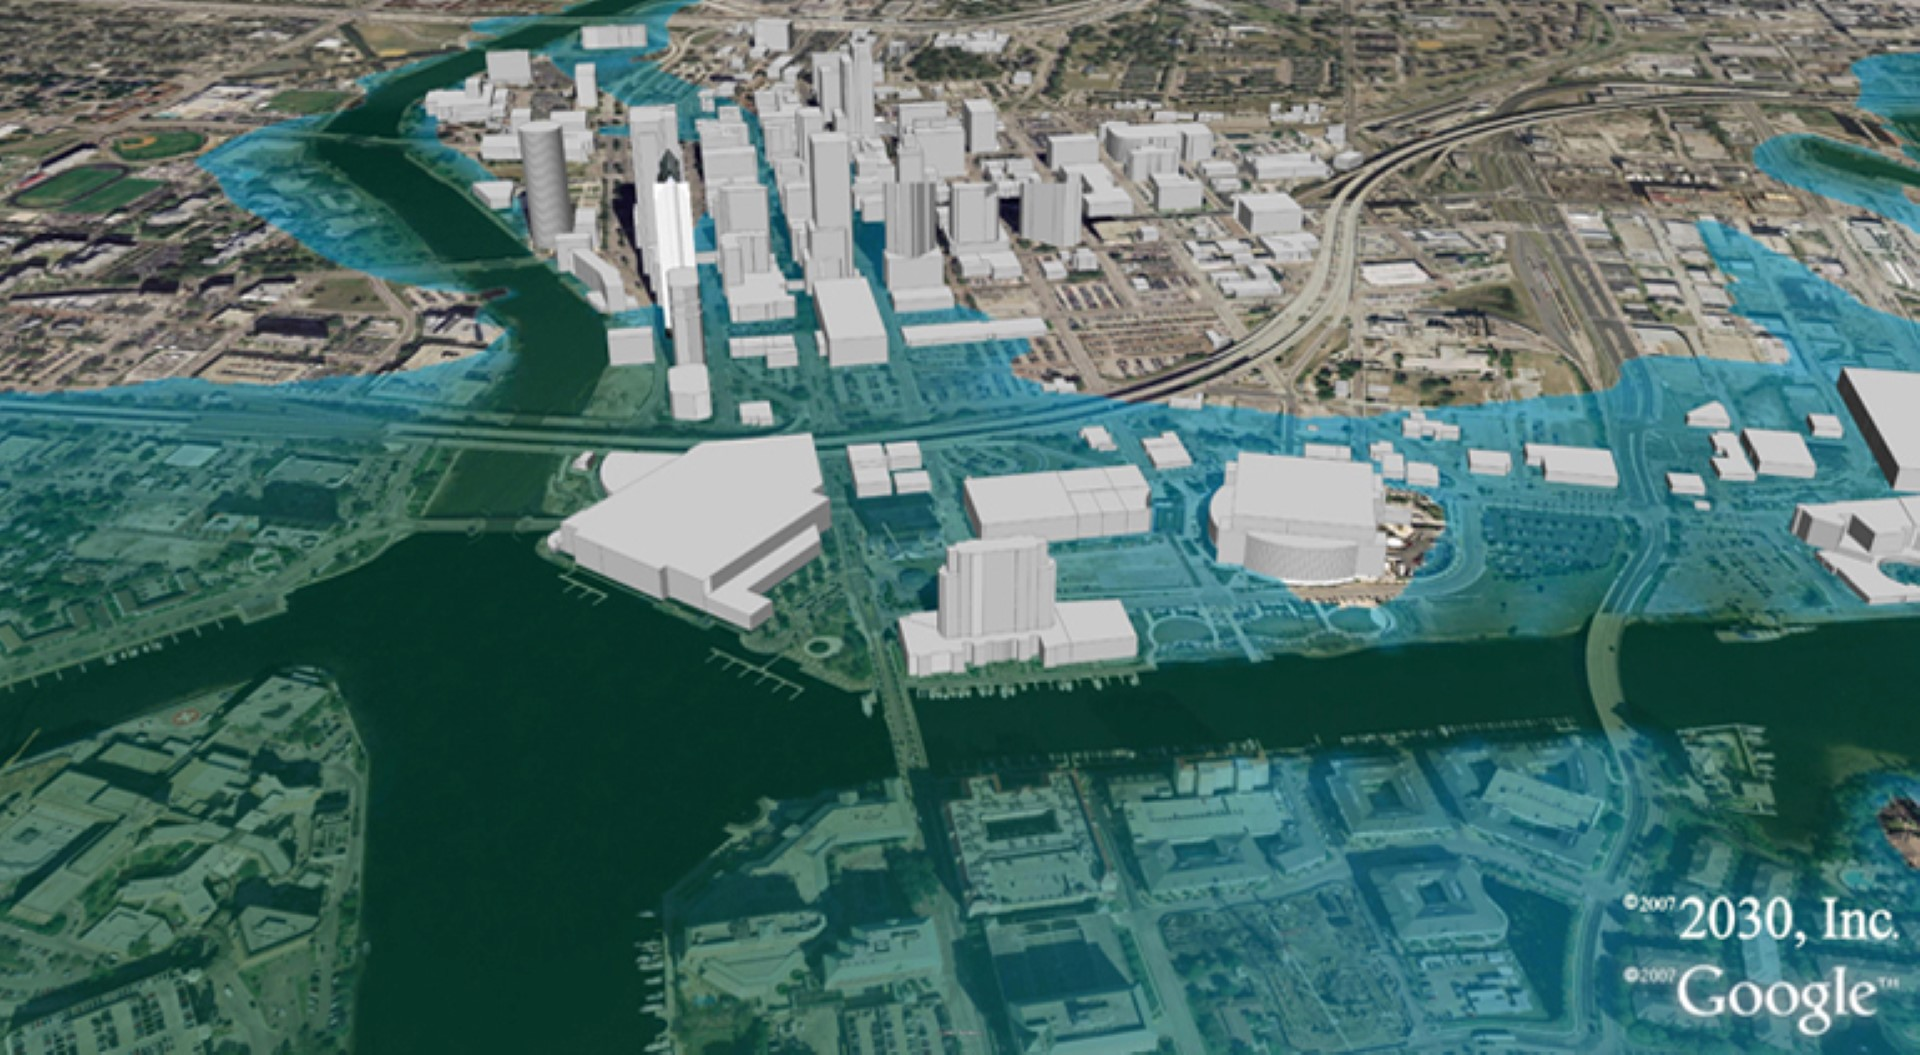 tampa_fl-5ft-sea-level-rise-large